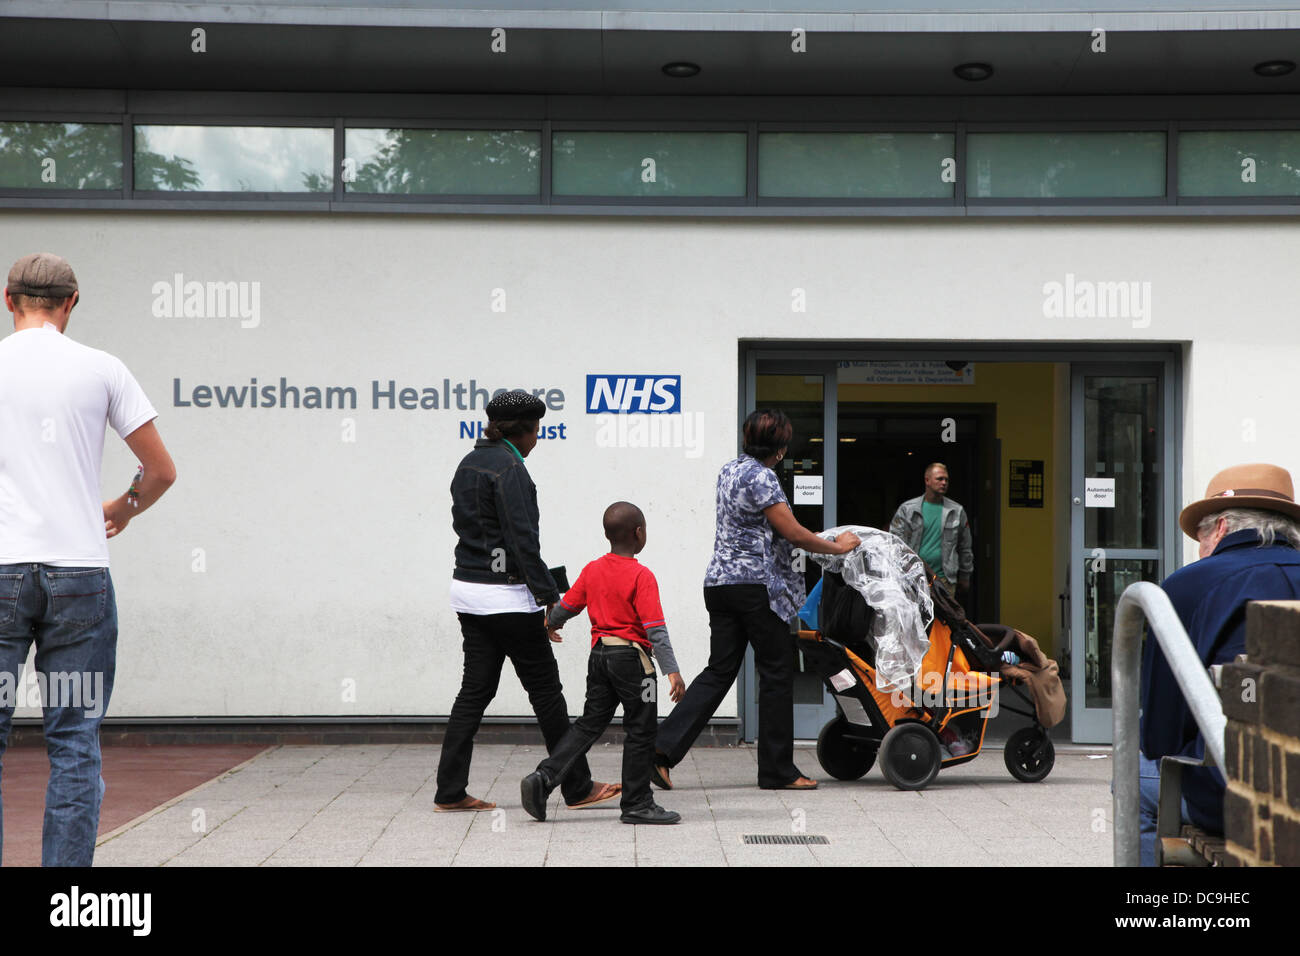 Lewisham Hospital, South London. The Accident and Emergency Department is under threat of closure - Stock Image